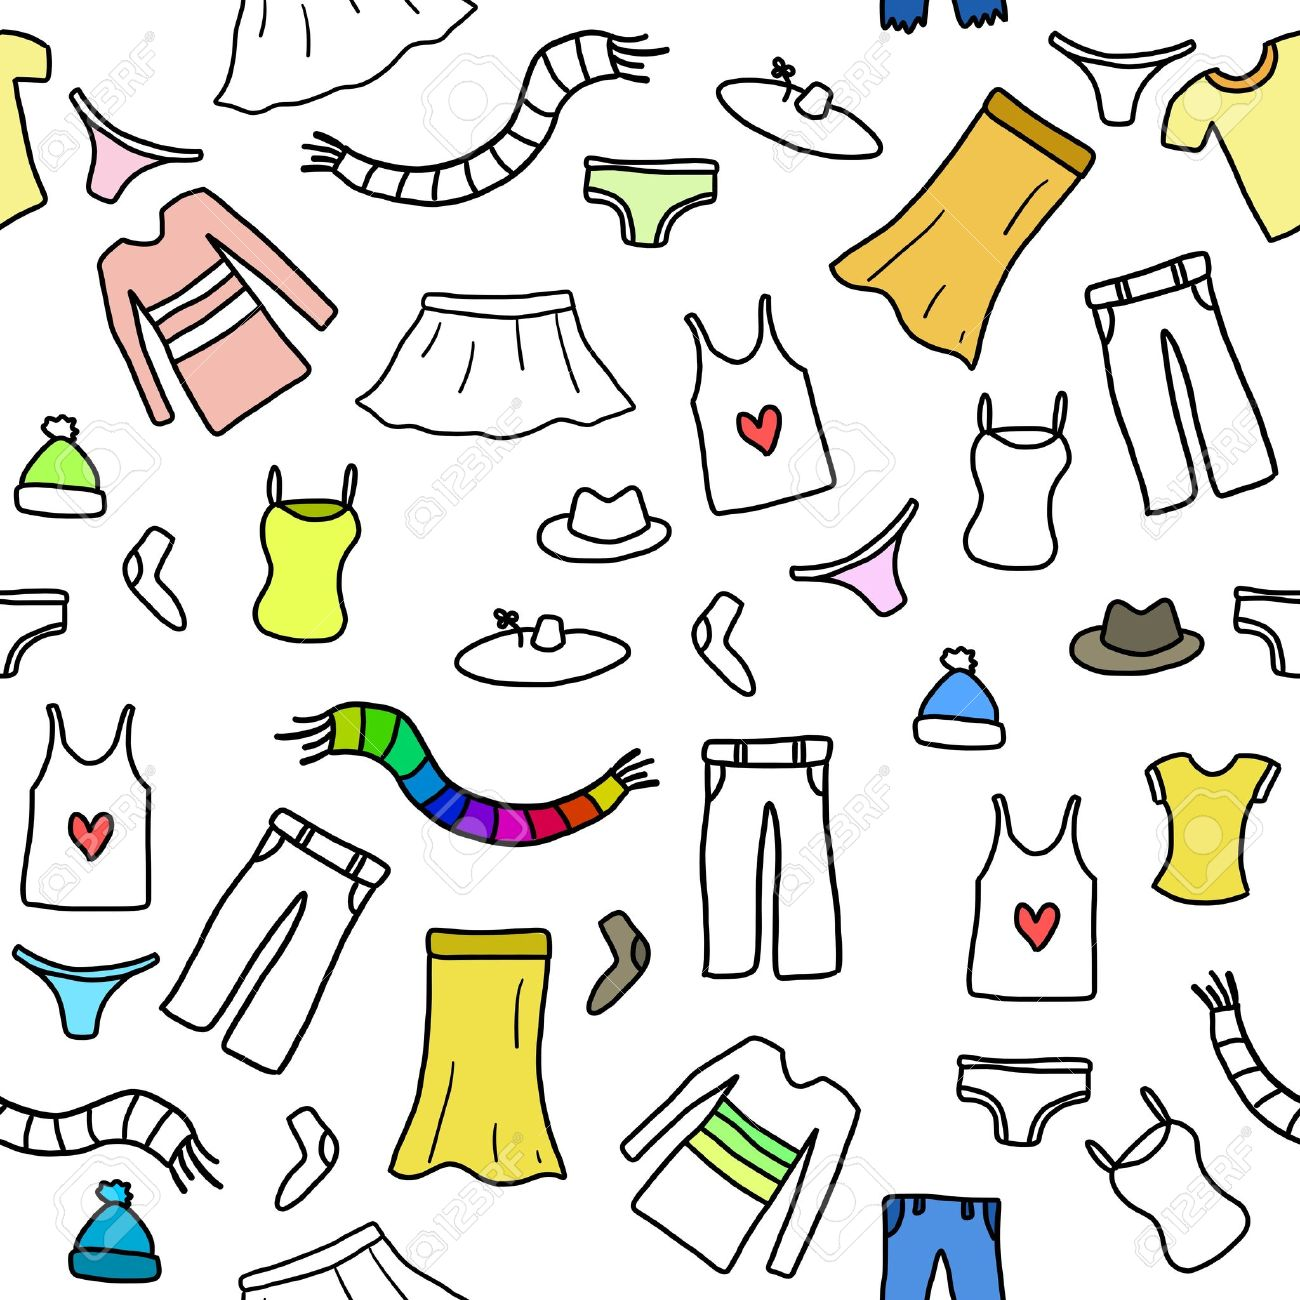 Seamless pattern fashion clothes and accessories icons and symbols seamless pattern fashion clothes and accessories icons and symbols fashion theme background doodle biocorpaavc Gallery